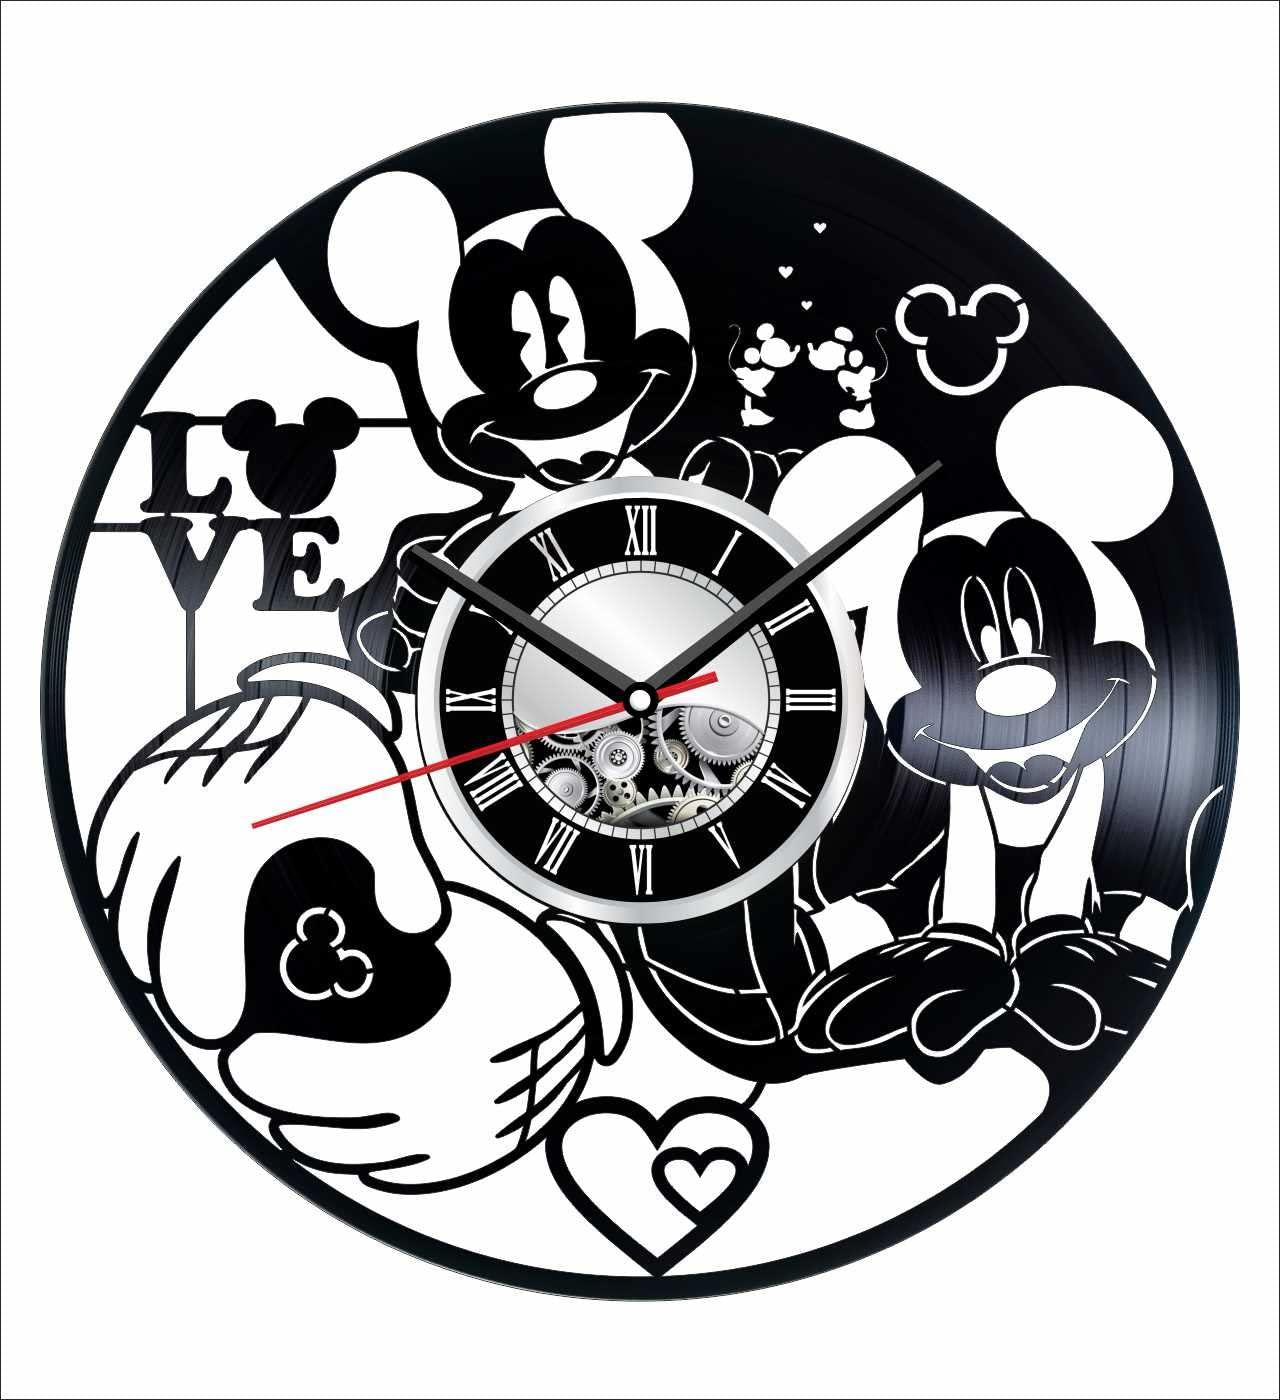 Mickey Mouse Wall Clock Made of Vintage Vinyl Records – Stylish Clock and Amazing Gifts Idea Unique Home Decor Personalized Presents for Men Women Kids Great for Living Room Bedroom Kitchen